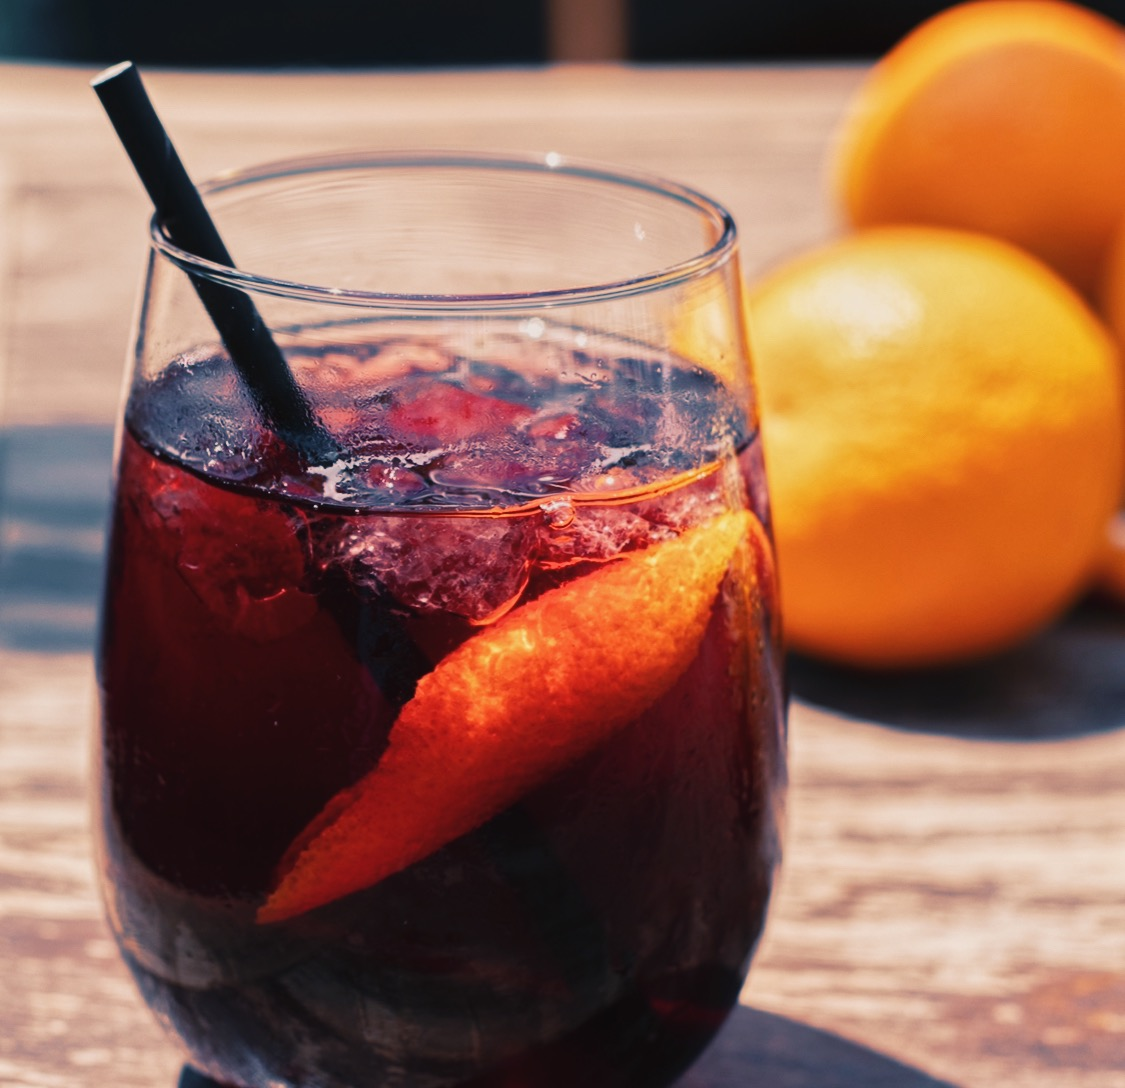 It's time for social distance cheers  because we can enjoy @movidamke Famous House Red Sangria on the Patio pic.twitter.com/WaHwsClX4P